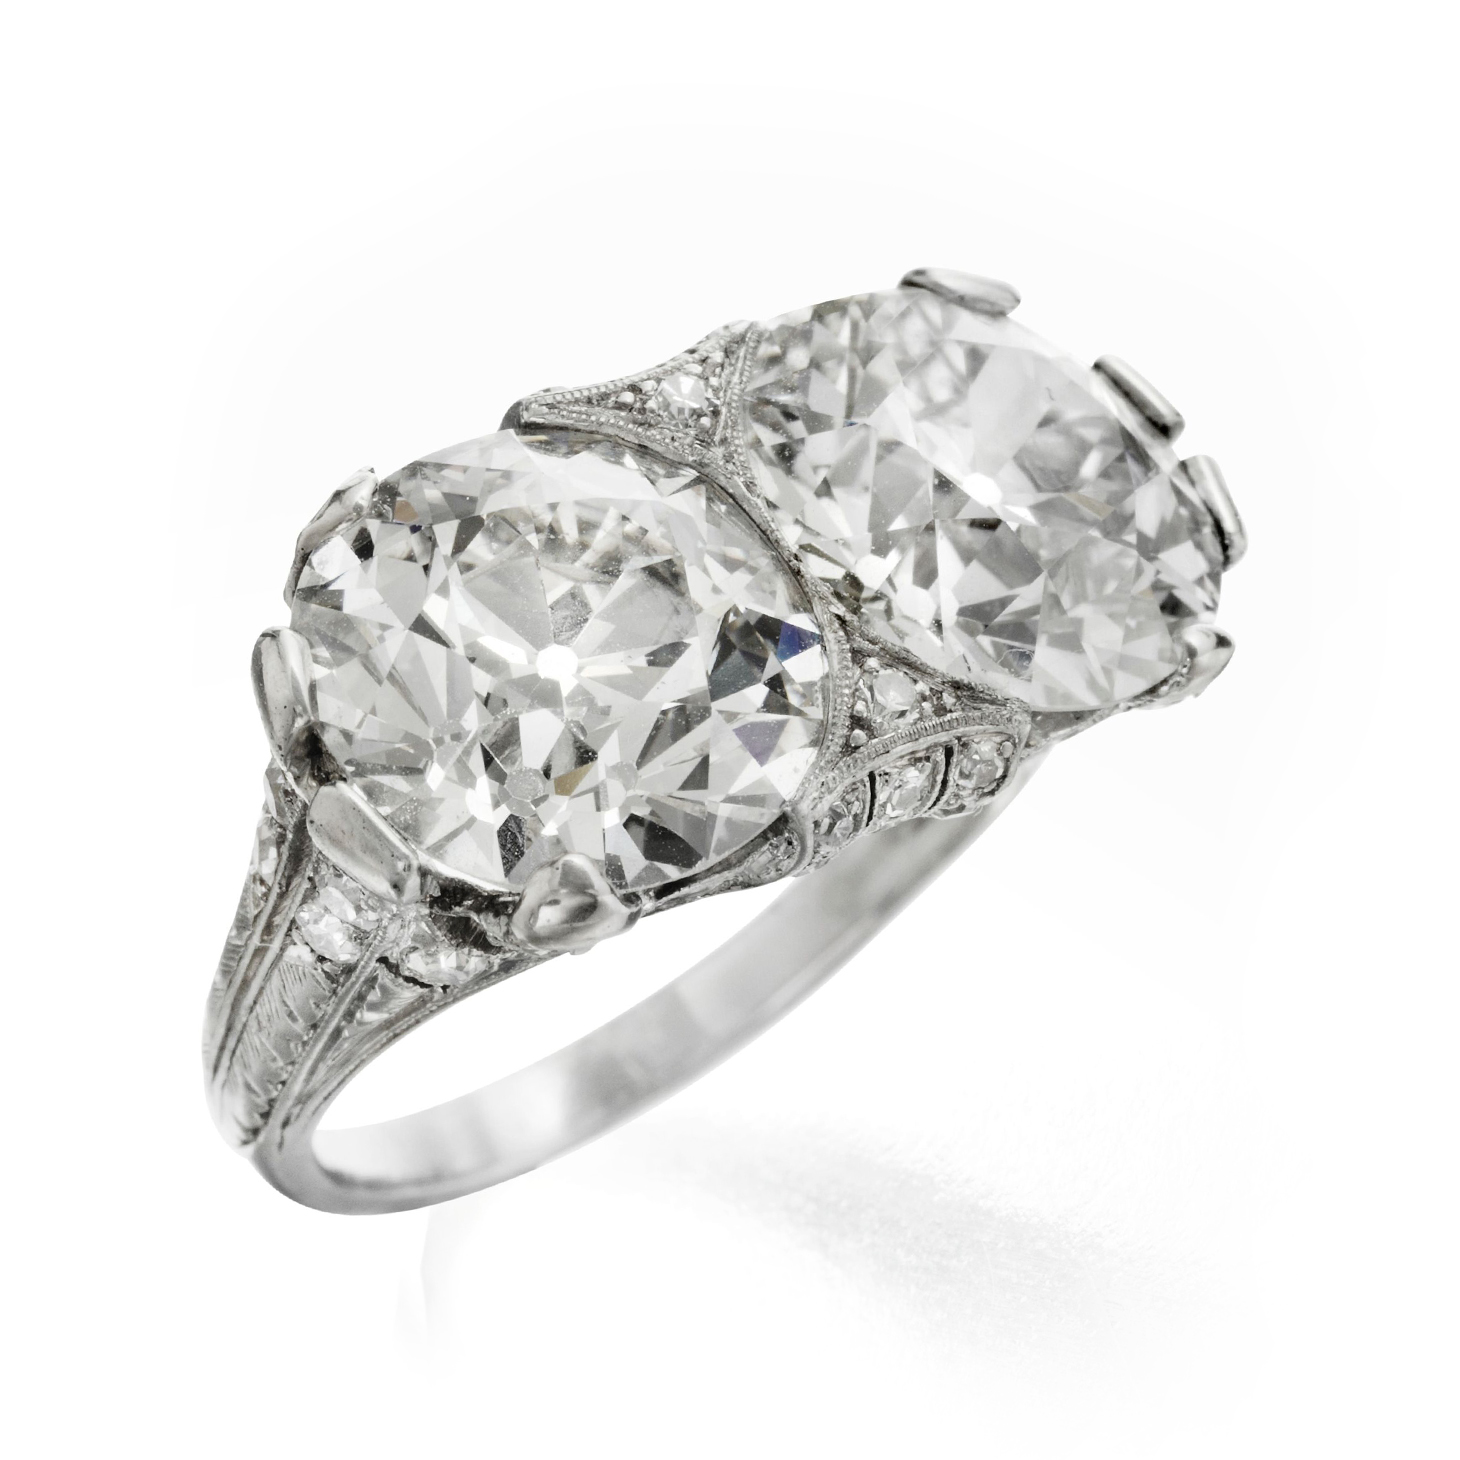 An Early 20th Century Diamond Twin Ring, set with old European-cut diamonds, weighing 4.78 and 4.56 carats